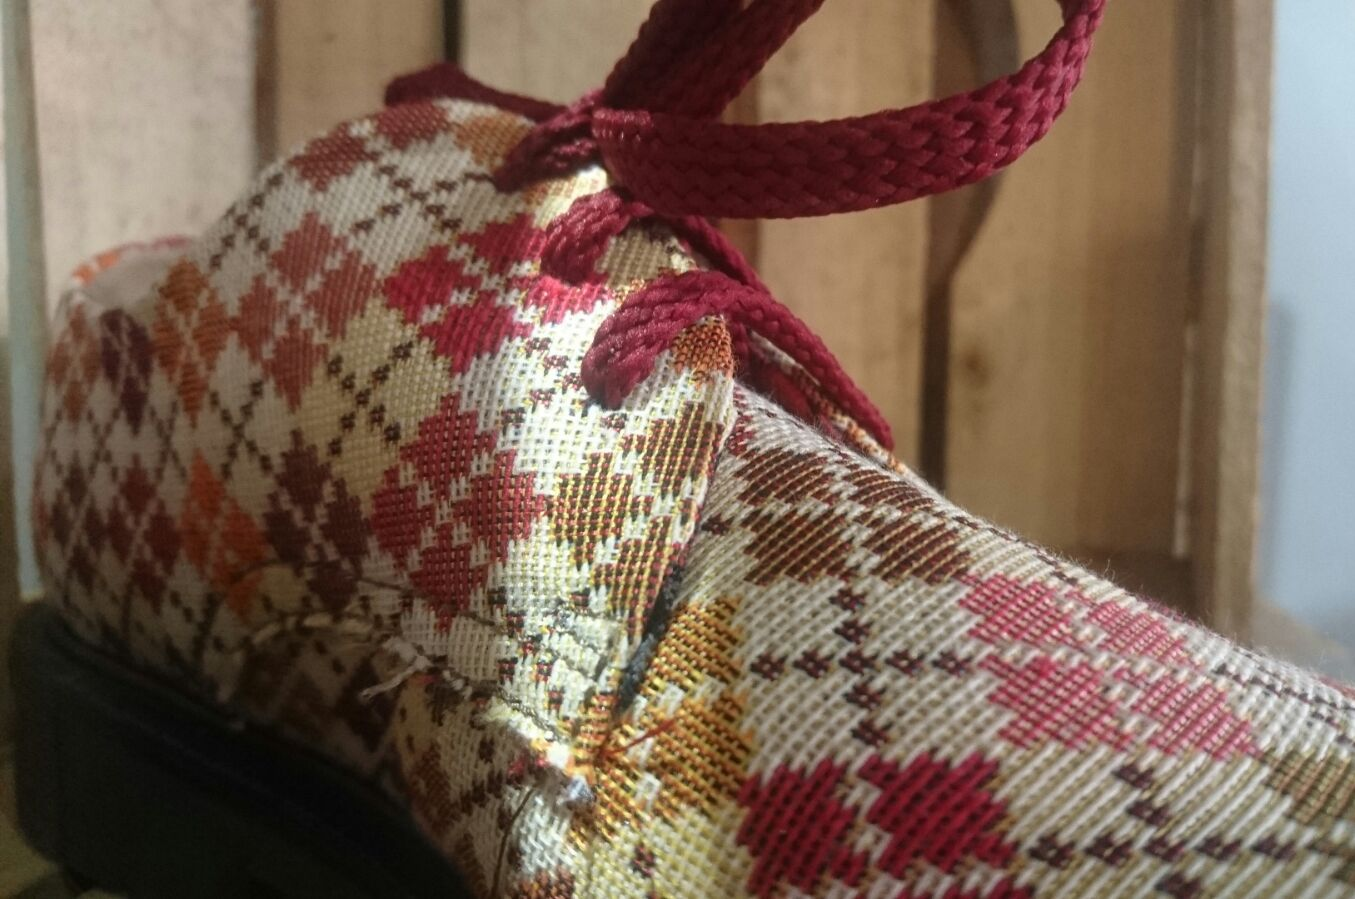 Detail of woven upper fabric, made from hemp.